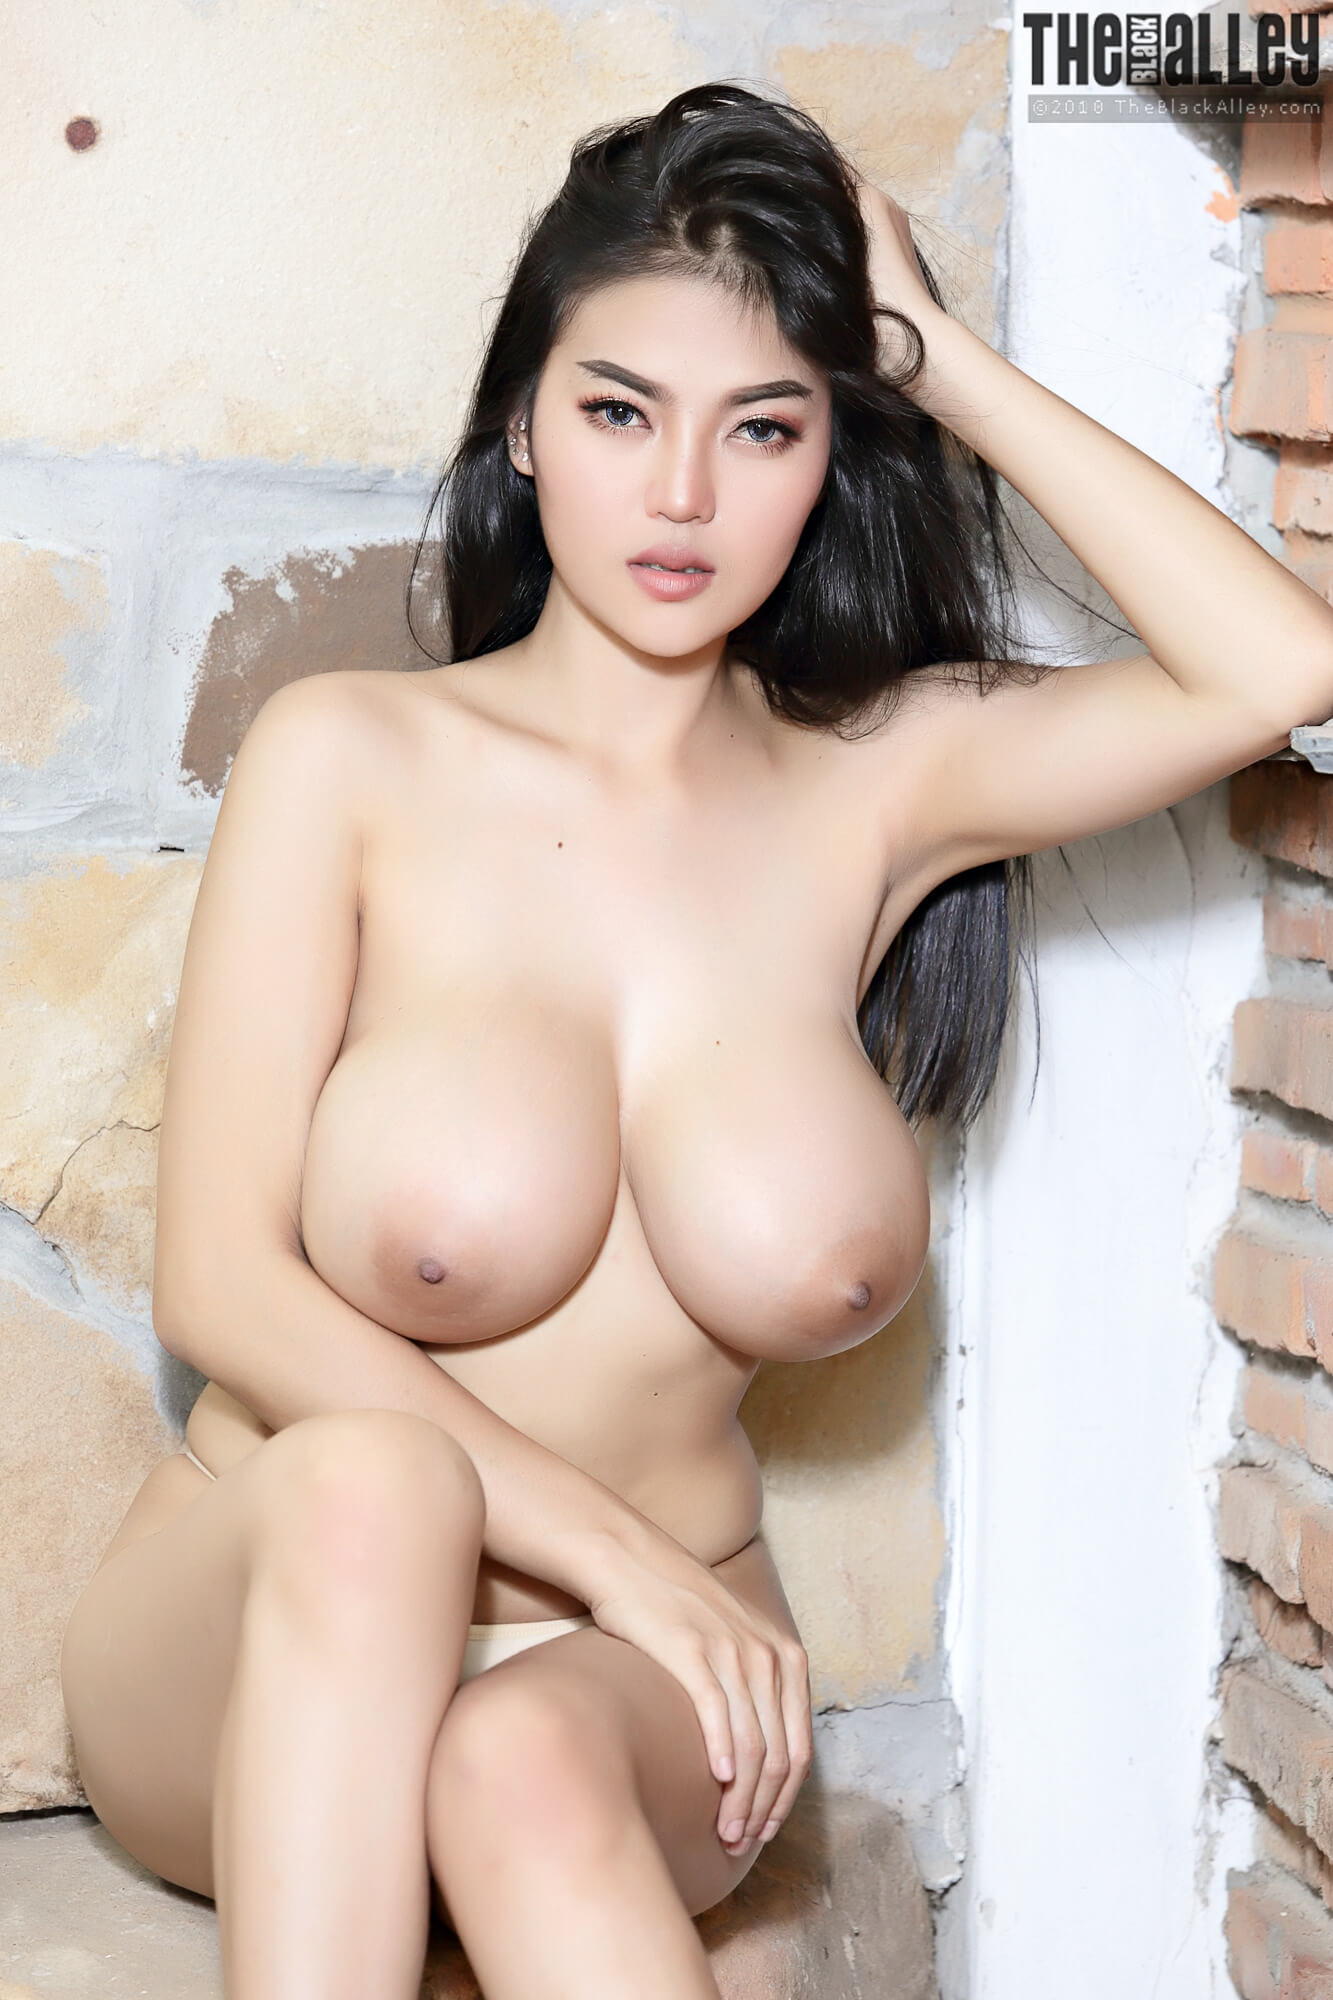 busty asian nude pics